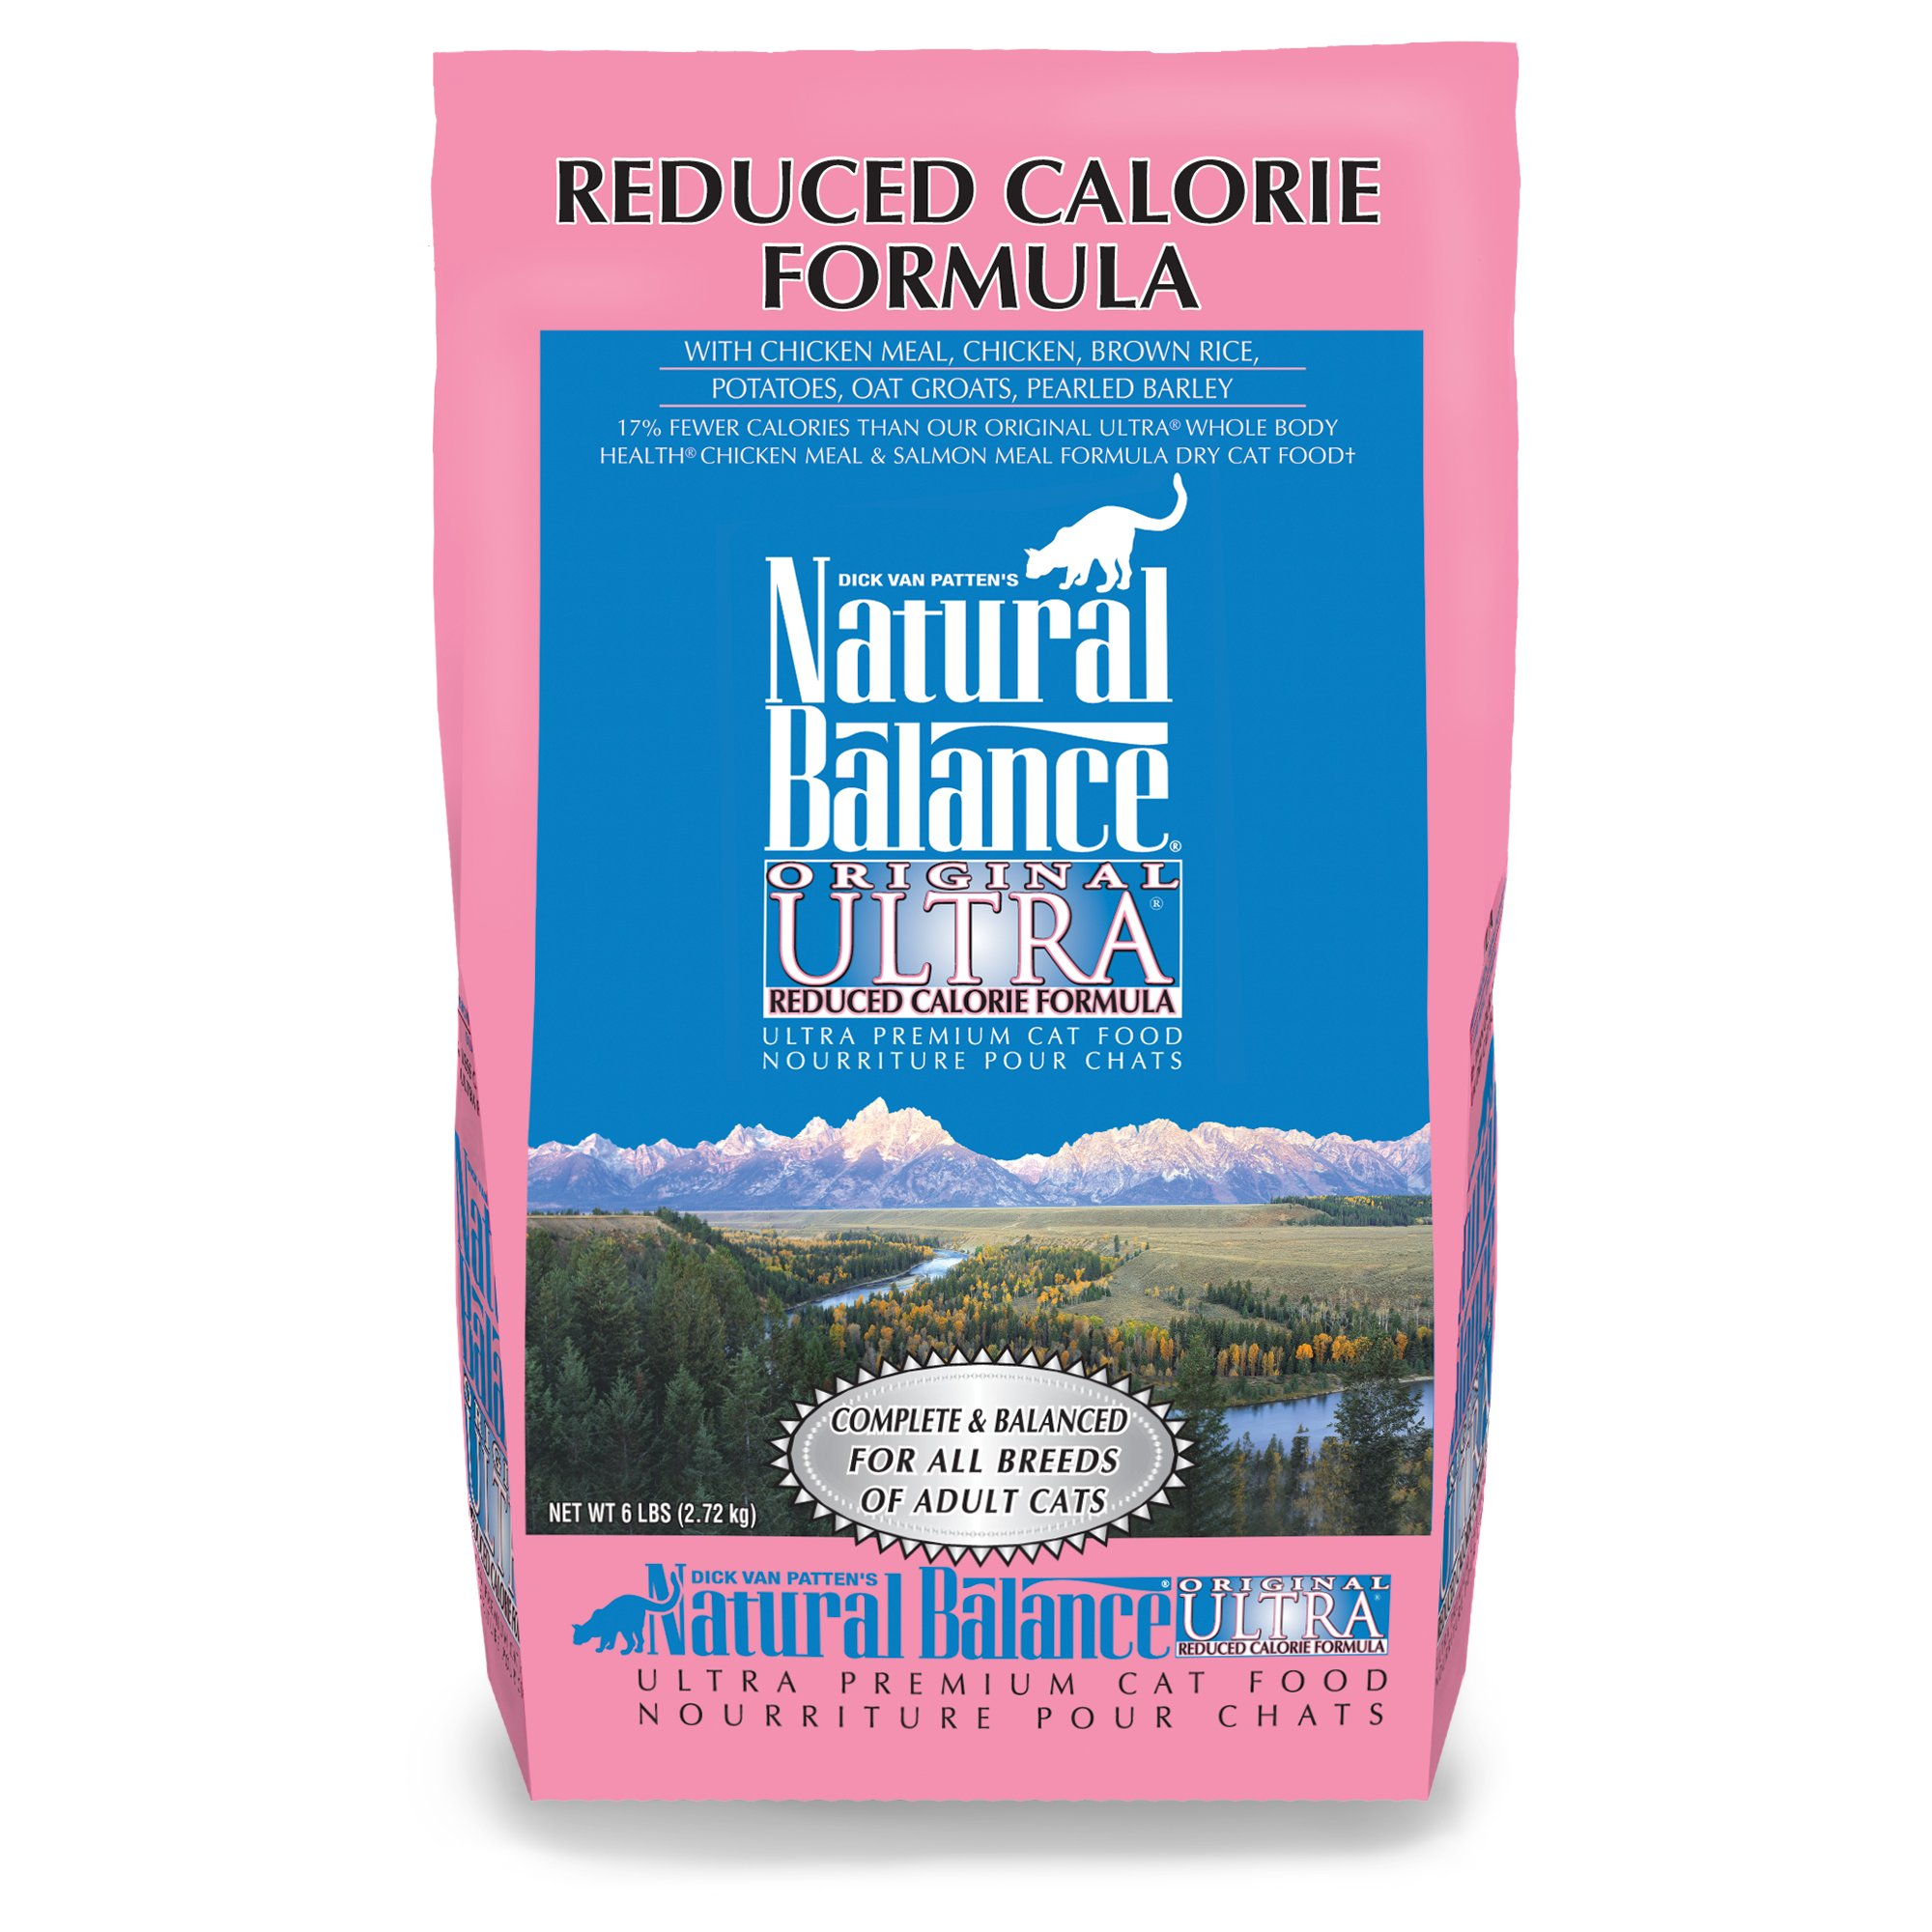 Natural Balance Reduced Calorie Formula Ultra Premium Cat Food